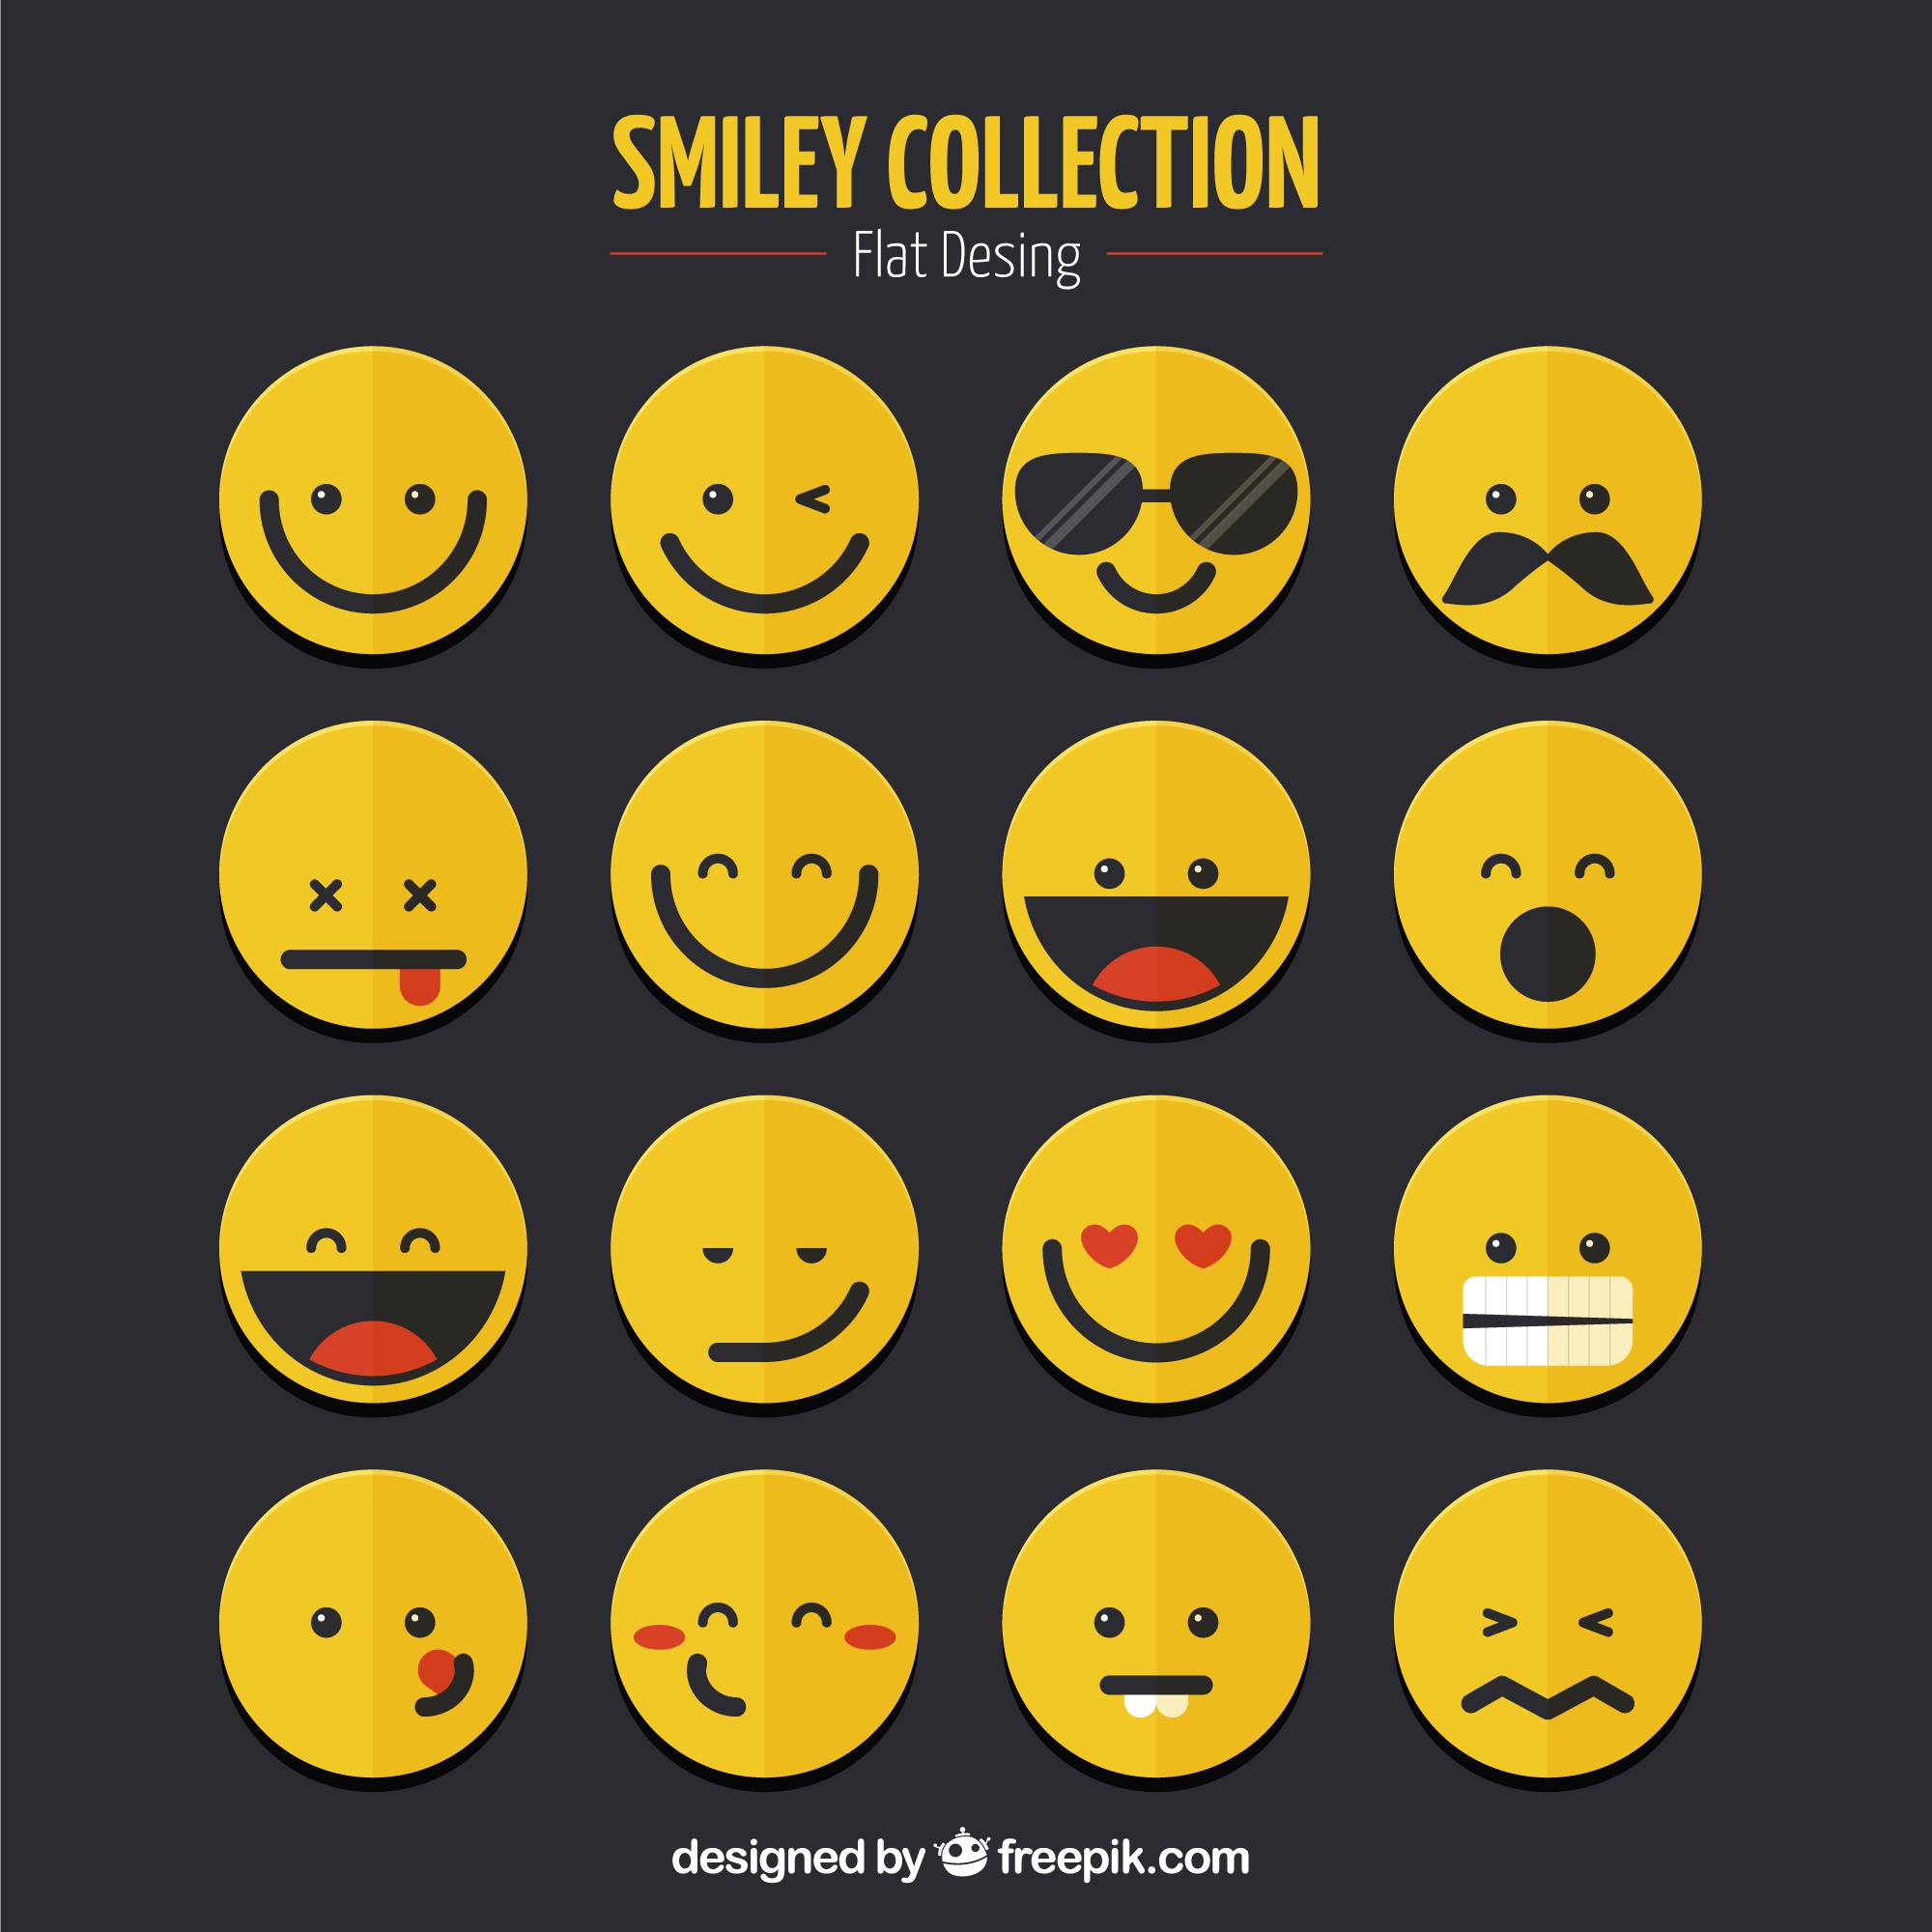 Smiley collection in flat design